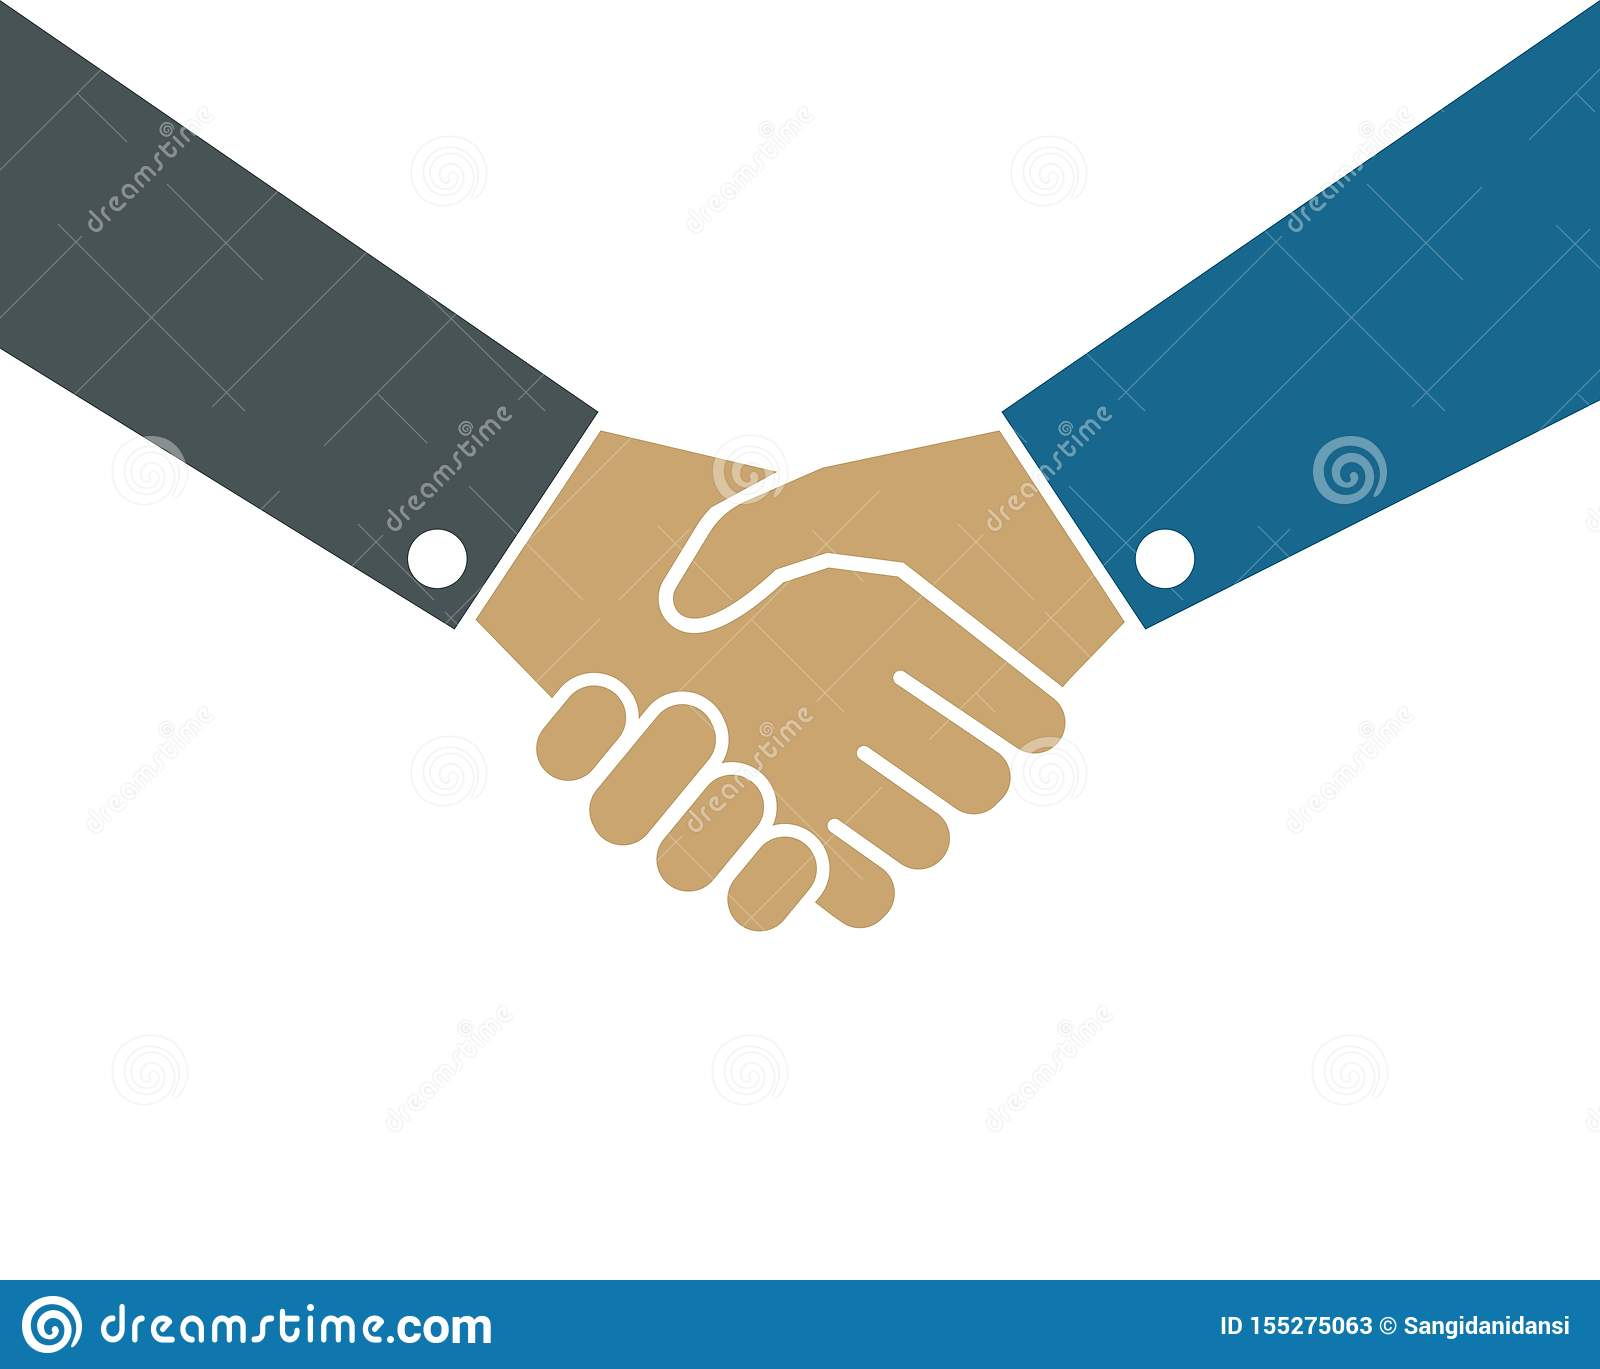 handshaking logo vector icon of business agreement